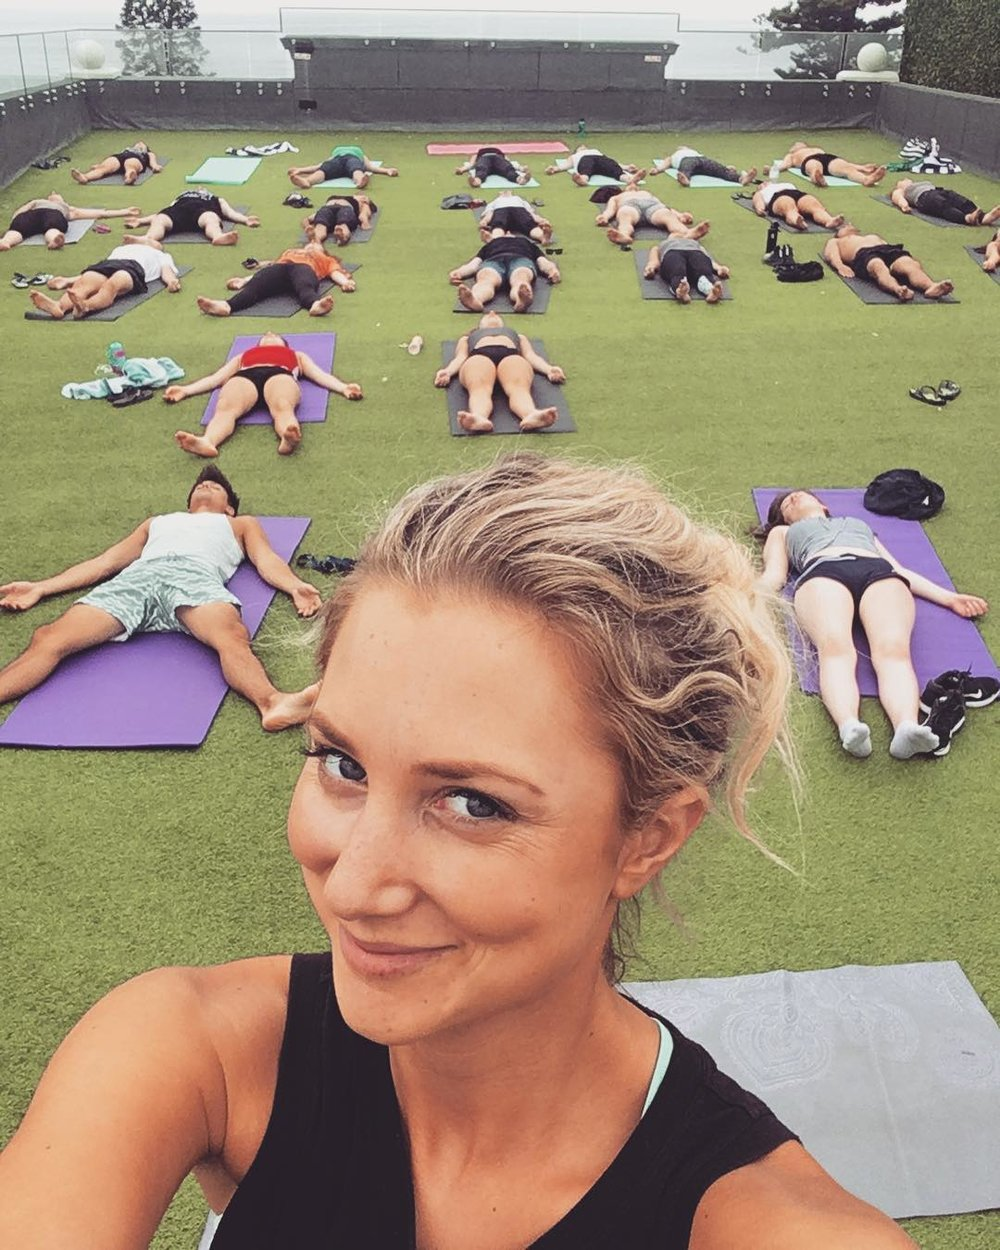 About - Wanting to put my creative juices to something that matters, I've started this blog to help you lead a healthier lifestyle. If you love yoga, pilates, meditation, all things fitness, nutrition, trends/current affairs you'll feel right at home here. I want you to believe that this Wellness industry has open arms for everyone and you don't need to be a certain type to feel HEALTHY, HAPPY, HAVE VALUE, RESPECTED and LOVED. I'm all about BALANCE and HONESTY. I want to build an encouraging community of supportive women.Law graduate and having spent my early twenties slaving away at a top professional service firm, I was over-worked and braindead. Training for a marathon (distracting myself from the bigger picture) saw me fall in love with Yoga. It was a true stress releaser and more importantly at the time an injury preventer. With my industry still suffering from the BIG recession, led me say f*ck it and I became a Yoga Teacher. Overtime I have completely emerged myself into the Wellness industry and achieved some pretty incredible things that I'm proud of.And now I want to help you immerse yourself in a world of health, wealth, laughter and balance.Through Yoga, Pilates, Reformer, Meditation (studios, rooftops, private, corporate), building a community (particularly Women) and Wellness Events, I have helped so many people in their journey into becoming their true self. AND I LOVE THAT. But I'm also learning from YOU and learning as I go along. I learn something new from the people I teach and work with. AND I LOVE THAT.I'd like to invite you to join my community by signing up to my email list. You'll get invited to blog posts, free events, classes and Wellness Events.Click the button to sign up.Thank you x